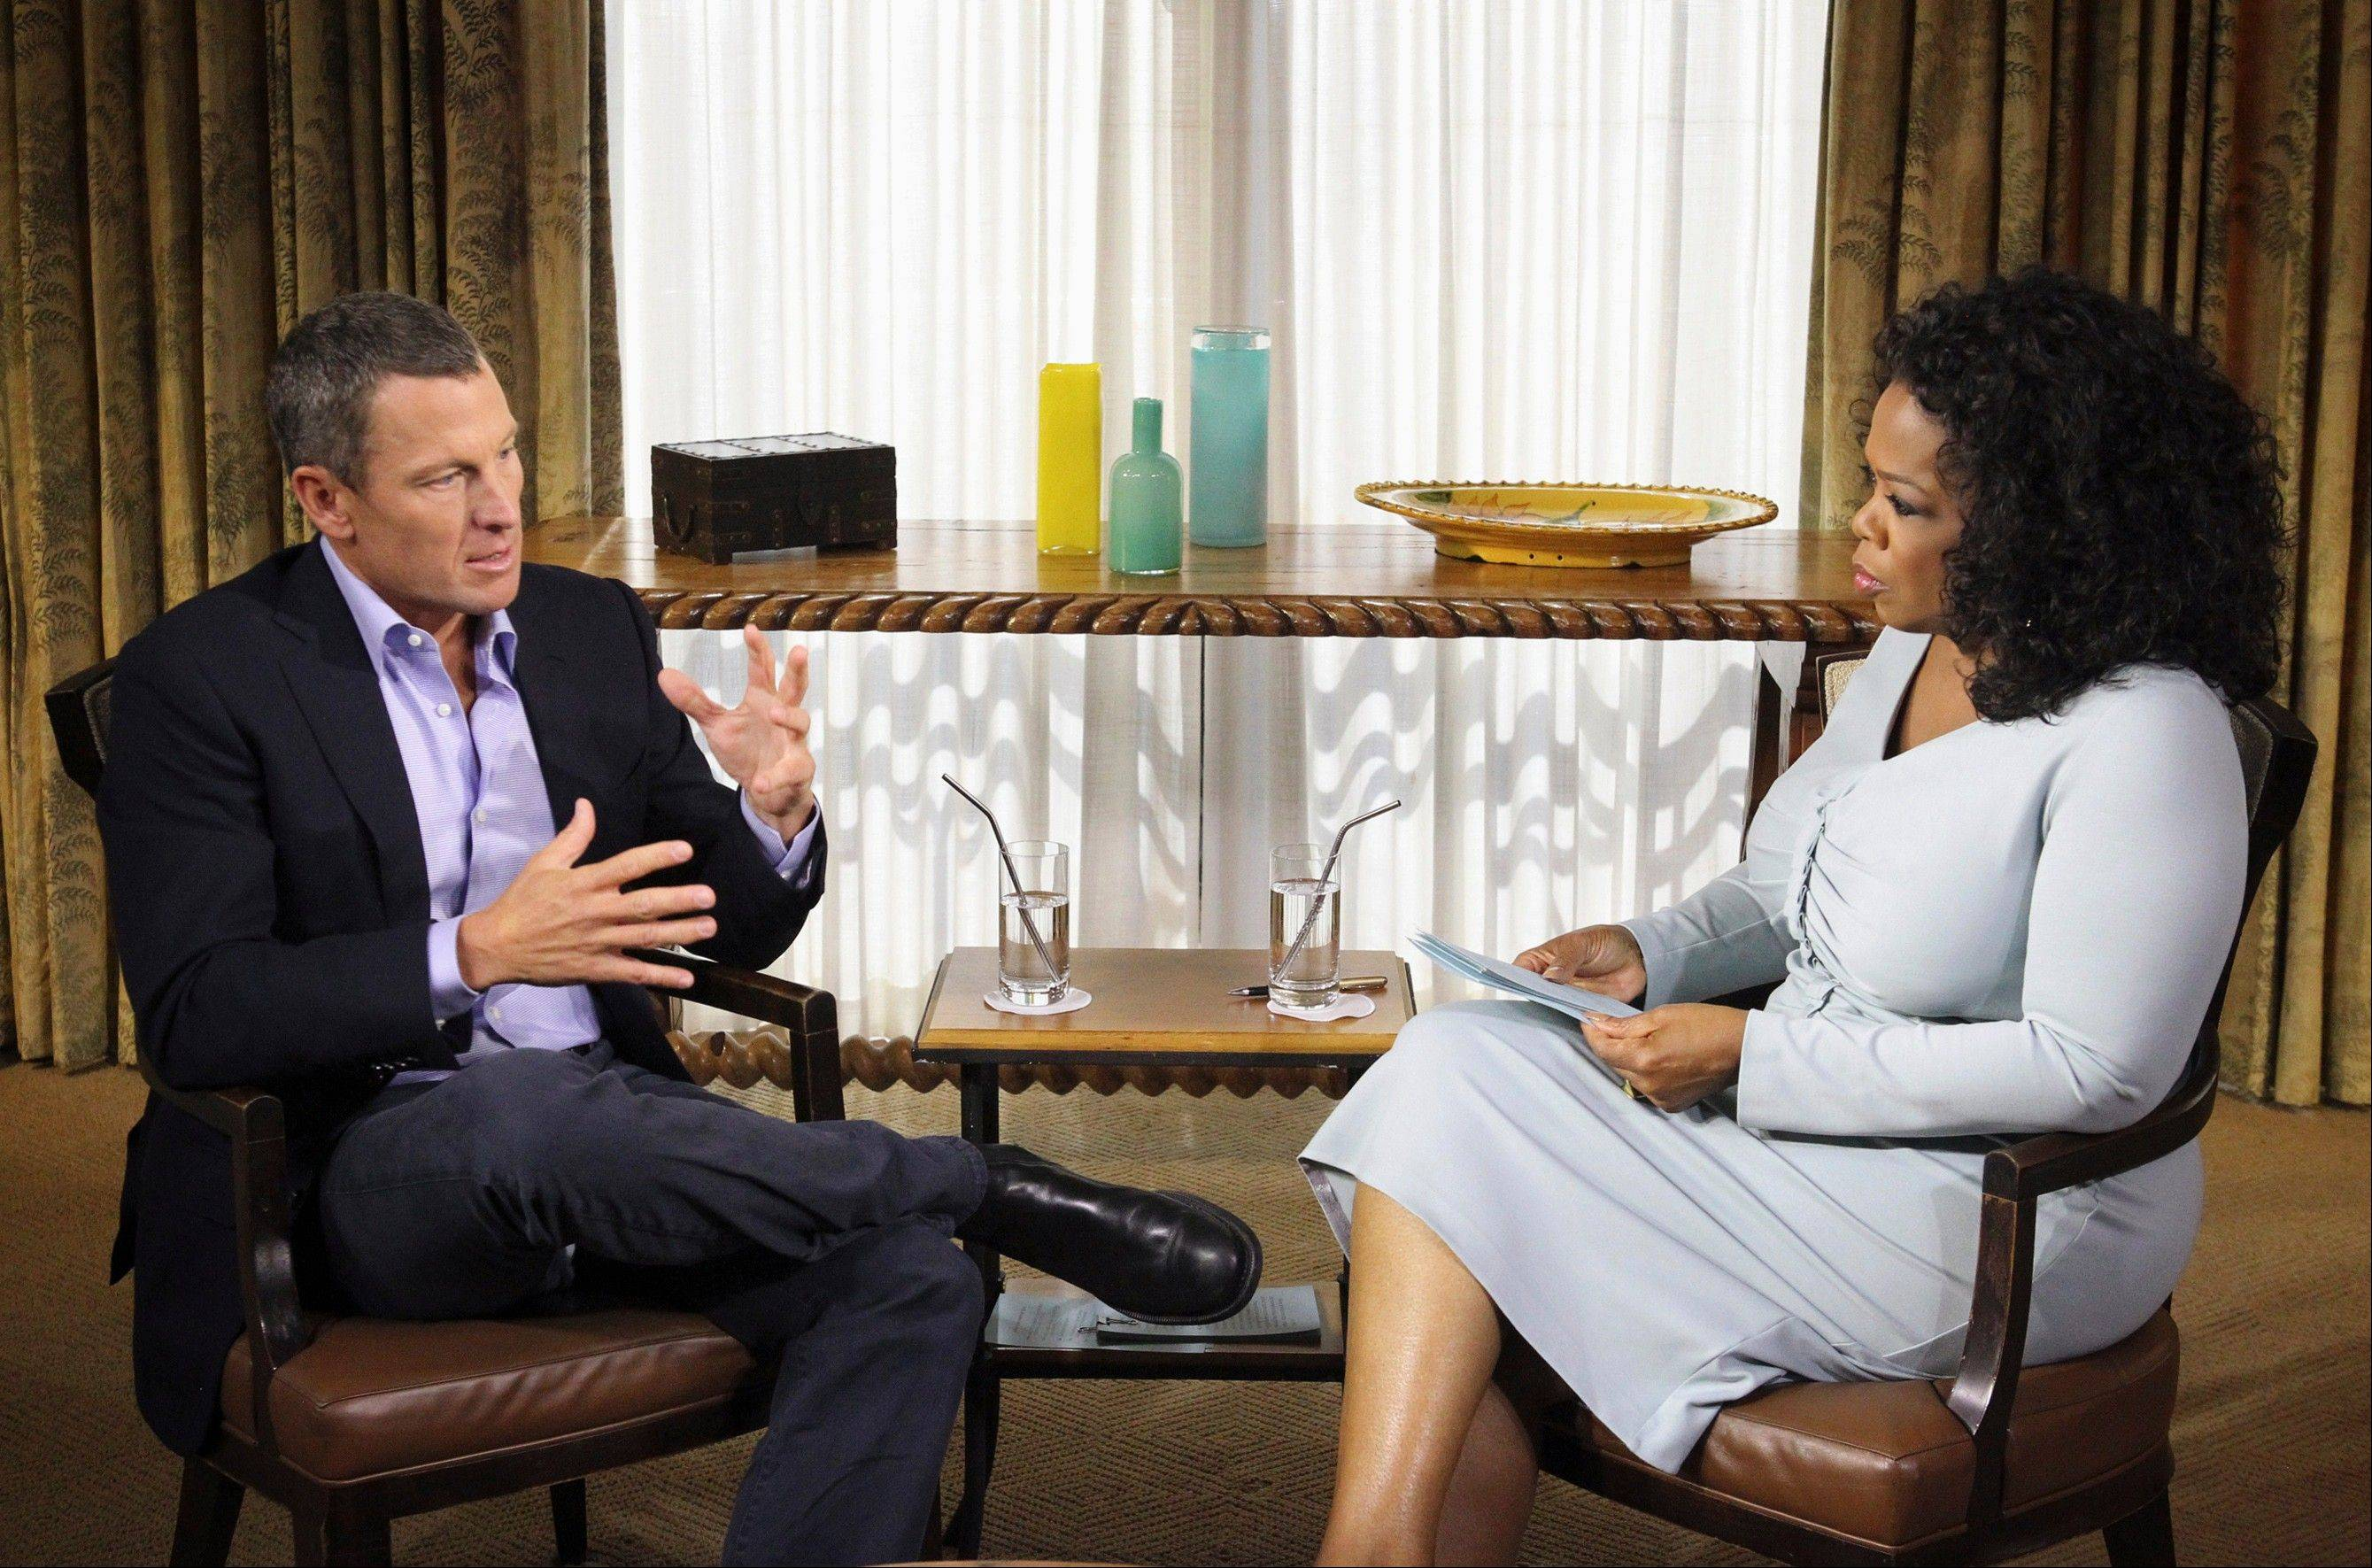 Talk show host Oprah Winfrey interviews Lance Armstrong during taping for the show �Oprah and Lance Armstrong: The Worldwide Exclusive� in Austin, Texas. Armstrong confessed to using performance-enhancing drugs to win the Tour de France cycling during the interview that aired Thursday, reversing more than a decade of denial.